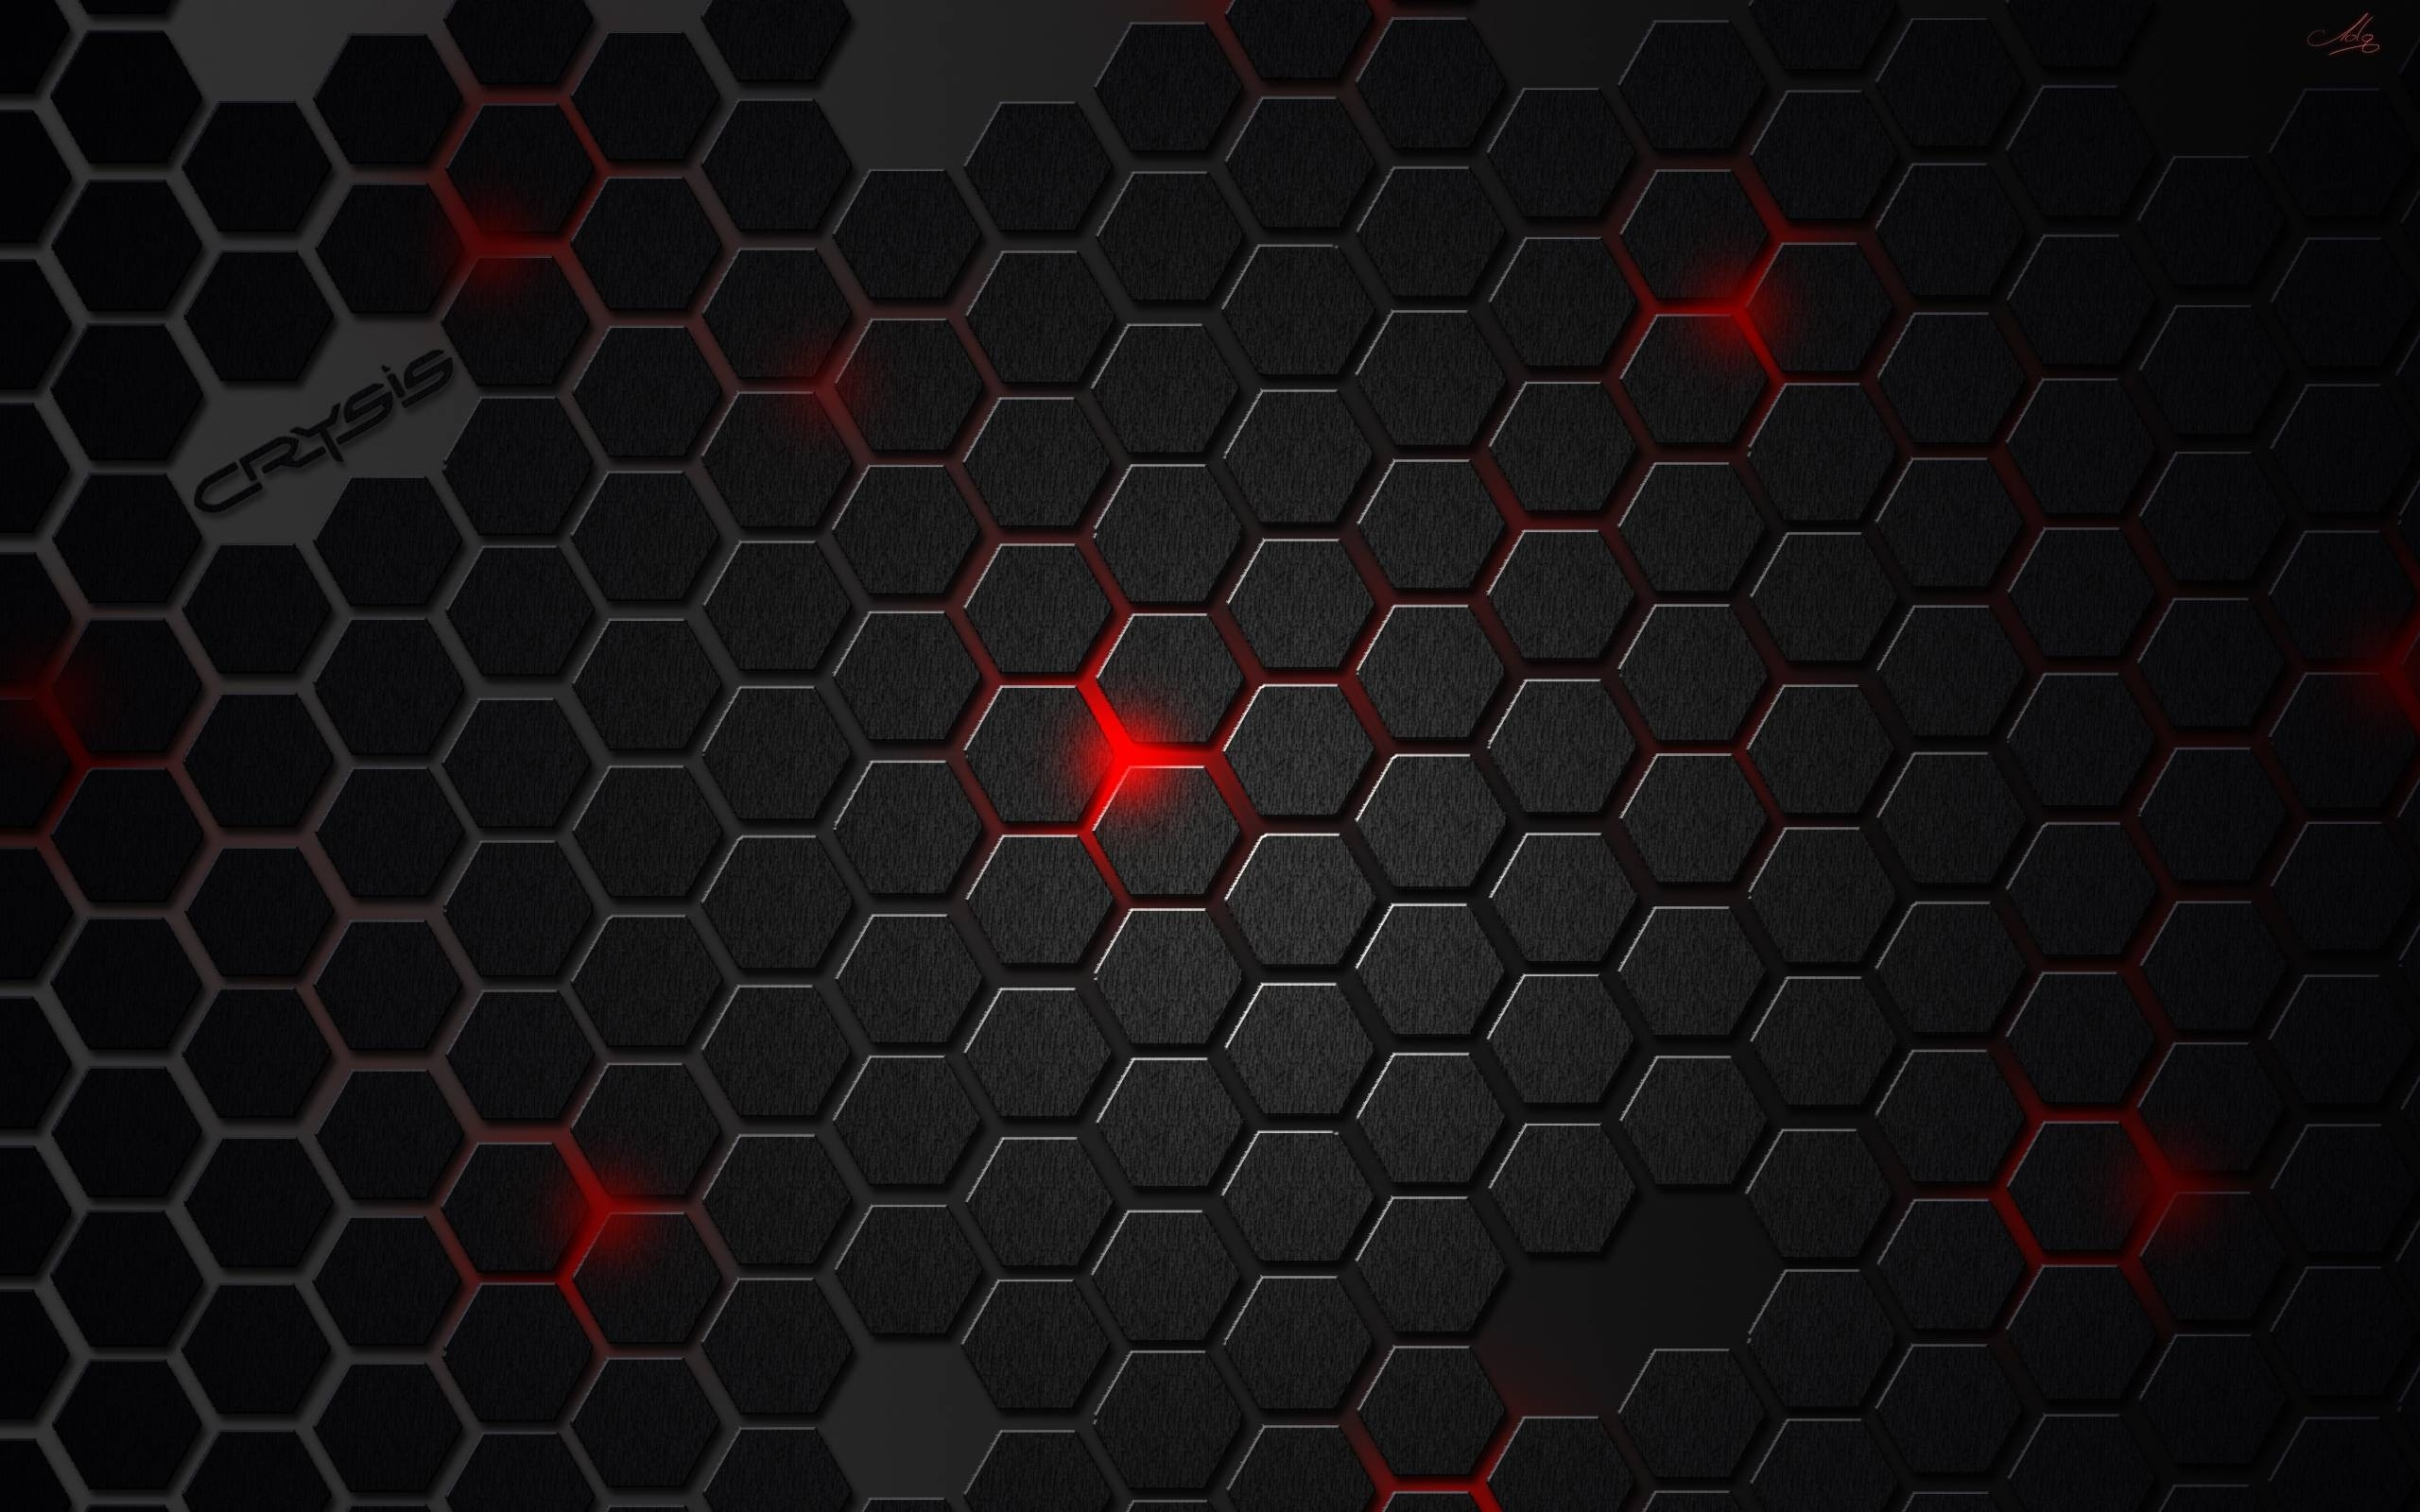 wallpapers hd black and red group (91+)